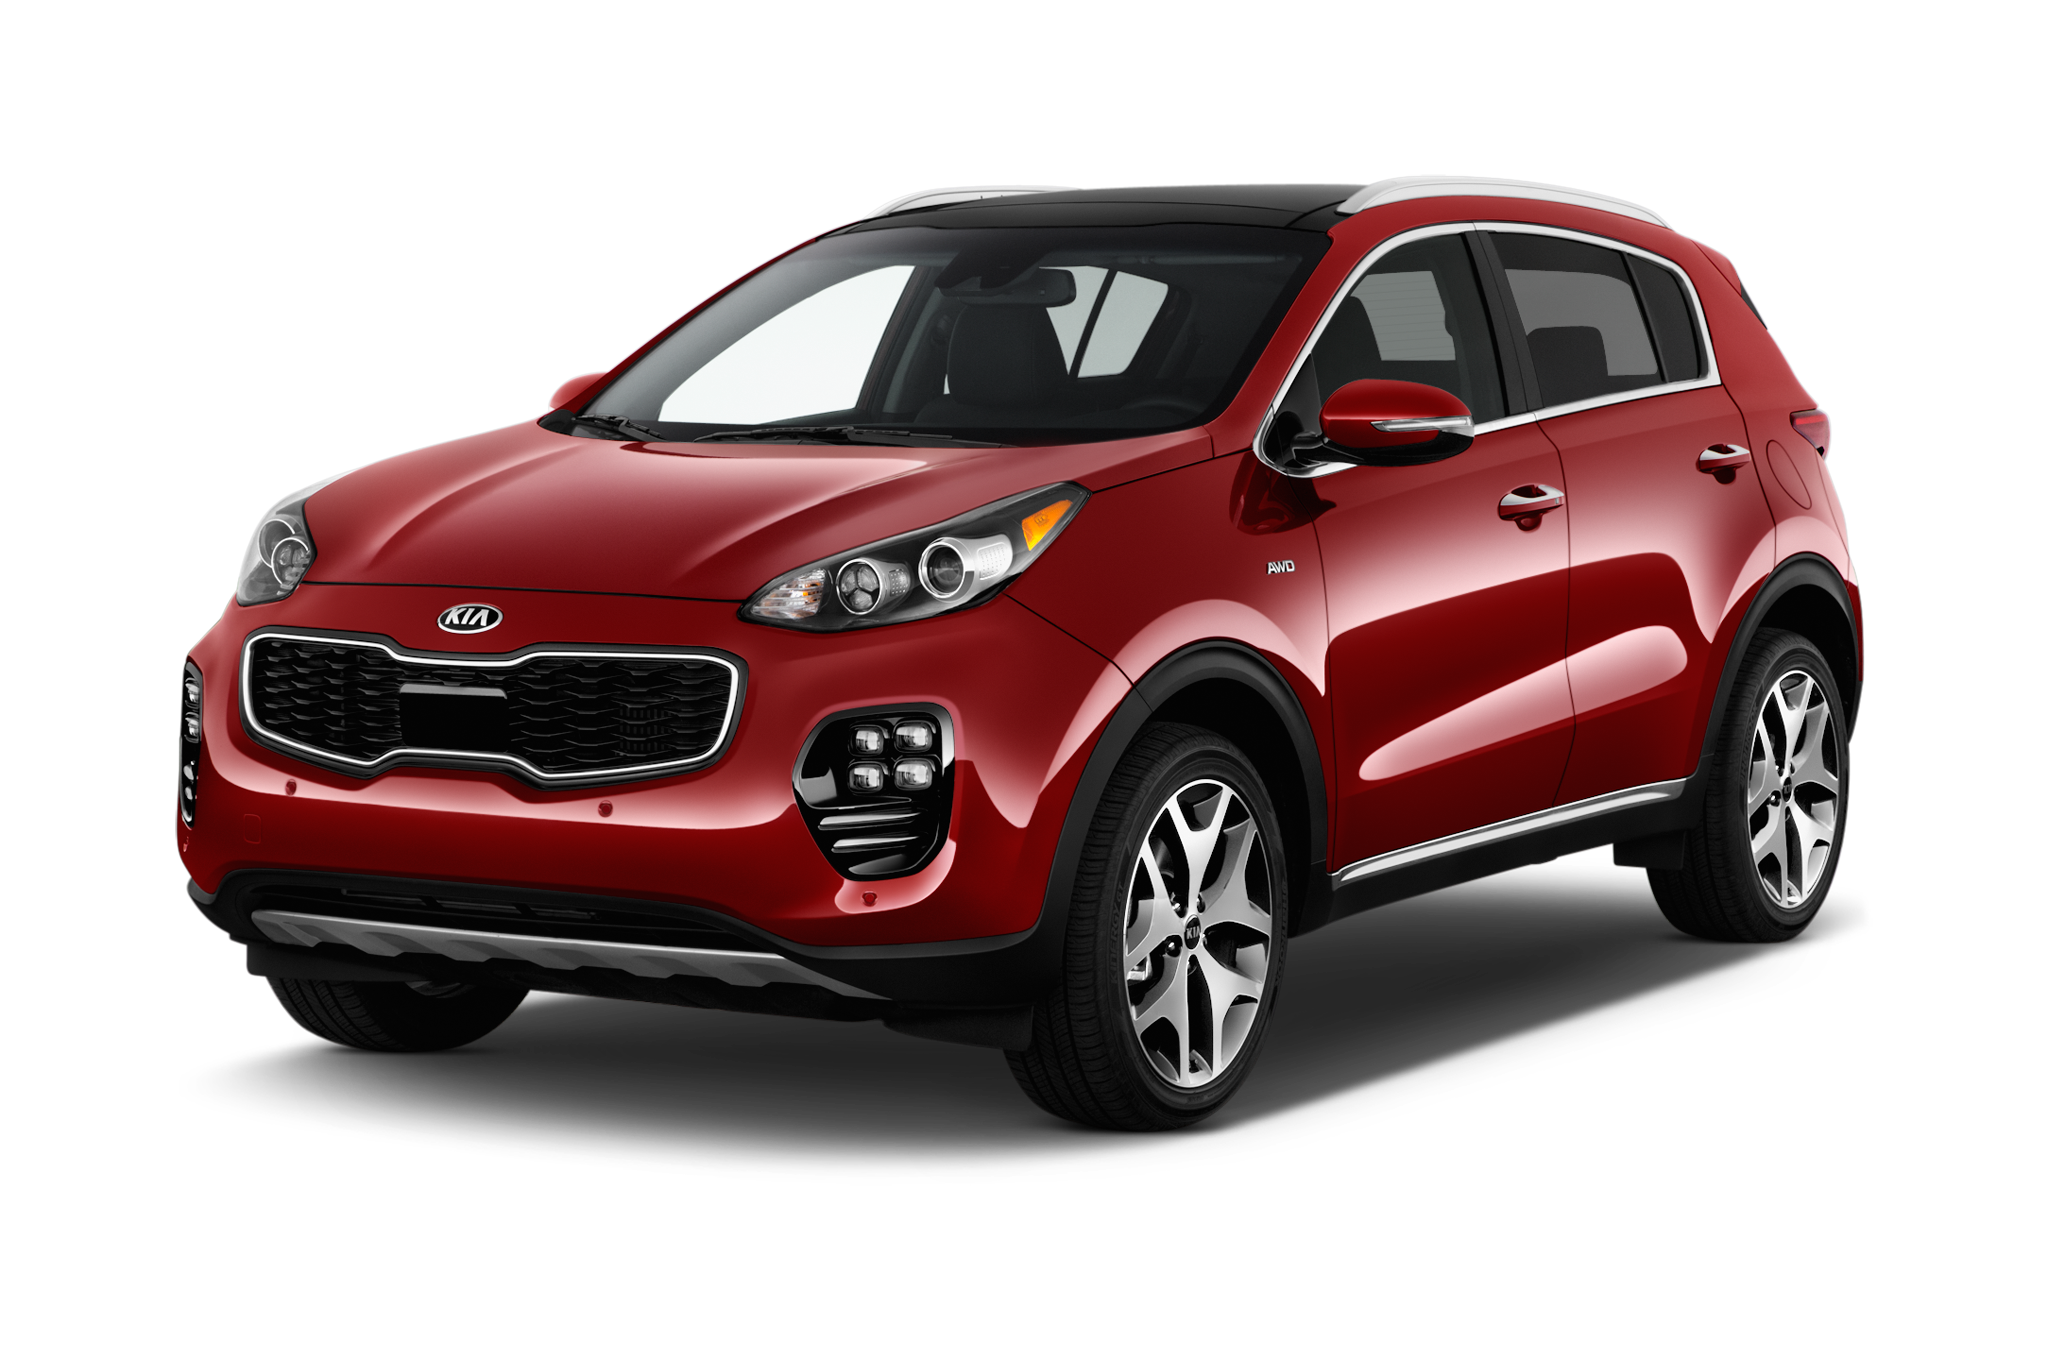 2017 kia sportage 2 4 lx at pricing msn autos. Black Bedroom Furniture Sets. Home Design Ideas